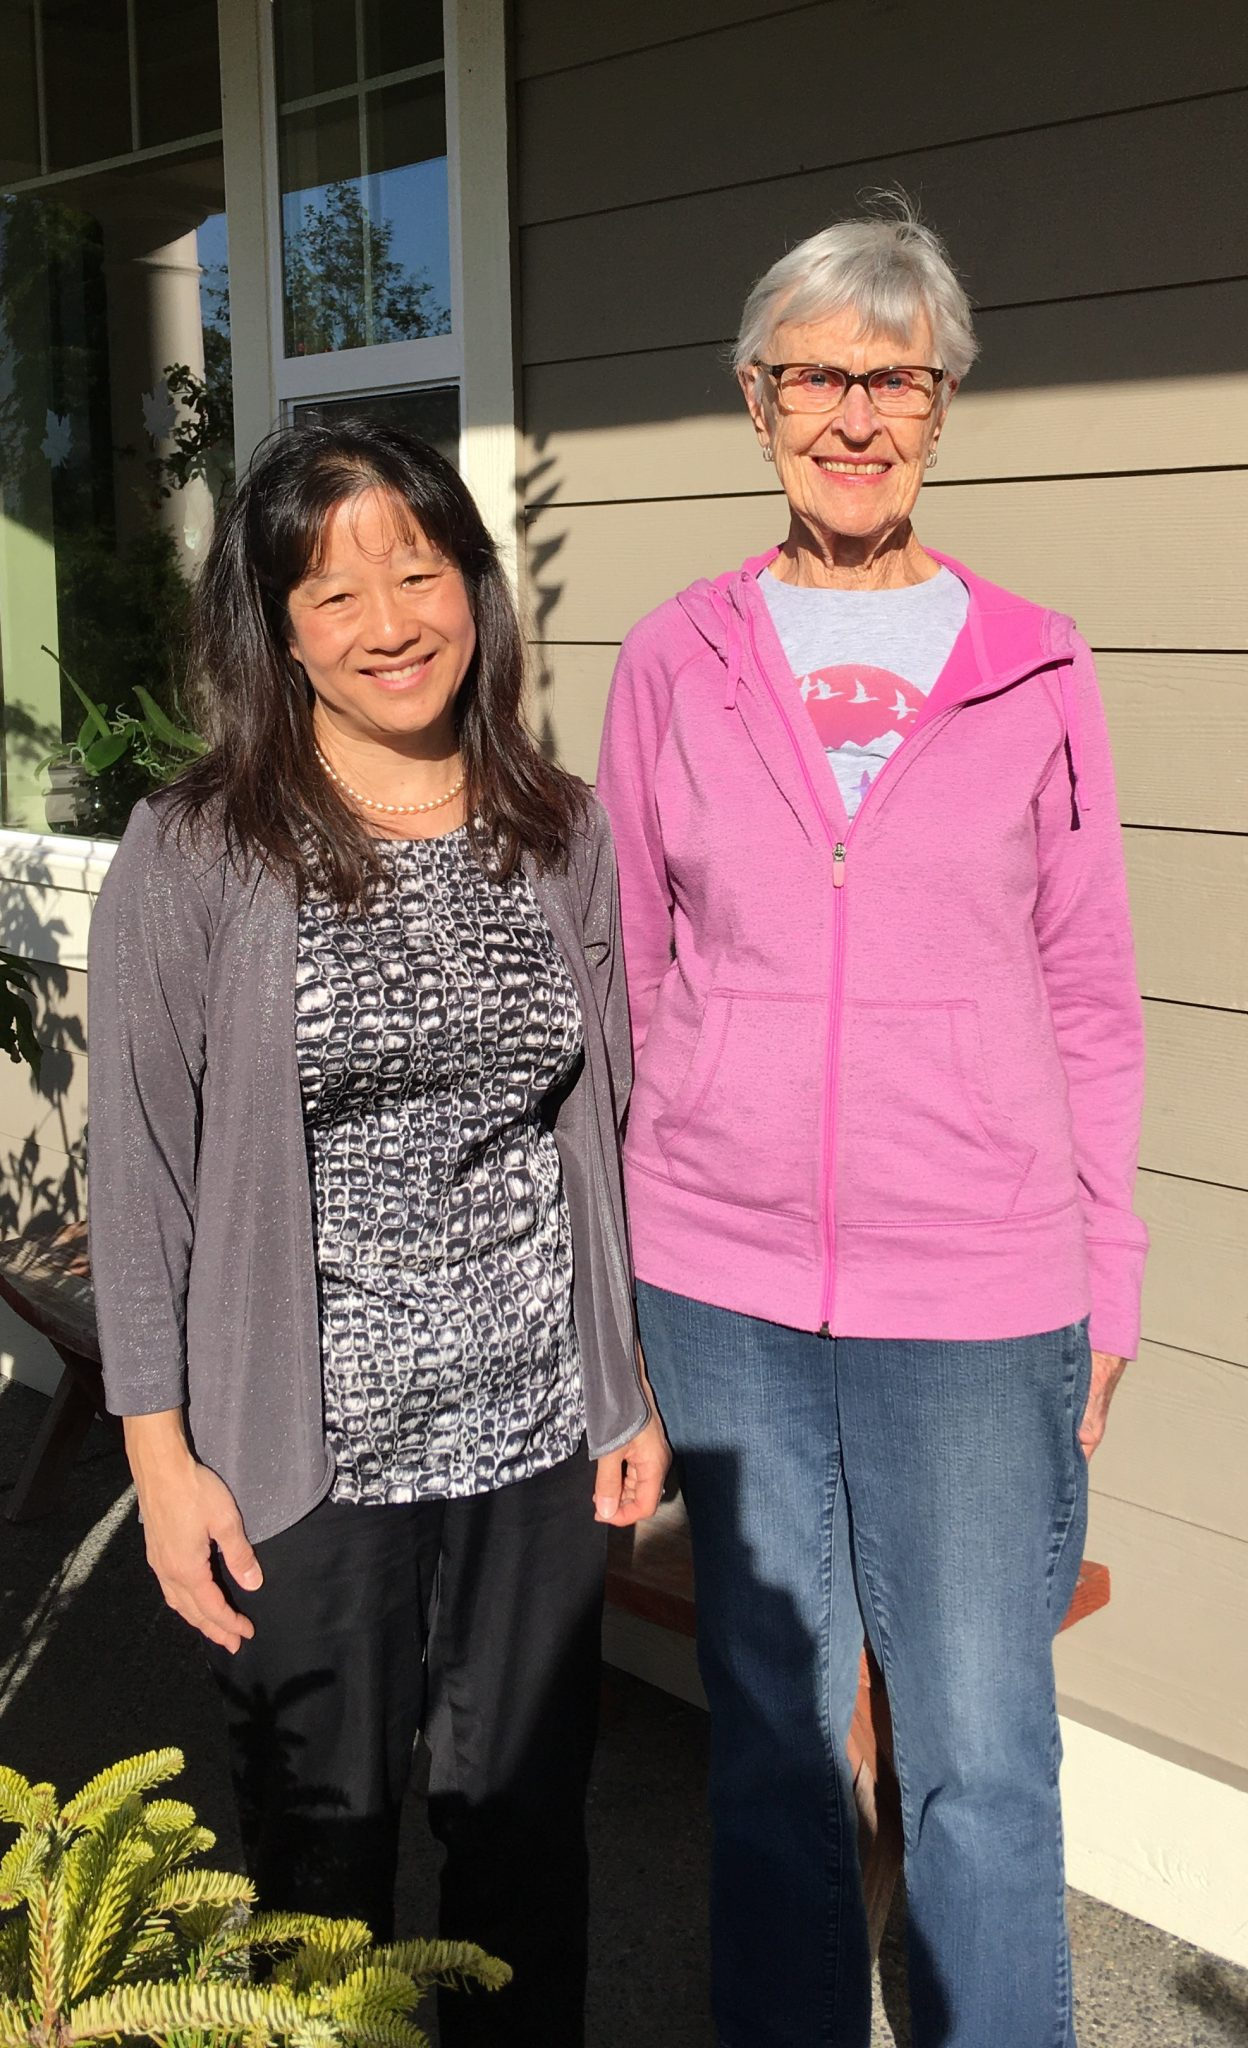 Dr. Eliza Chin with Dr. Vivian Harlin